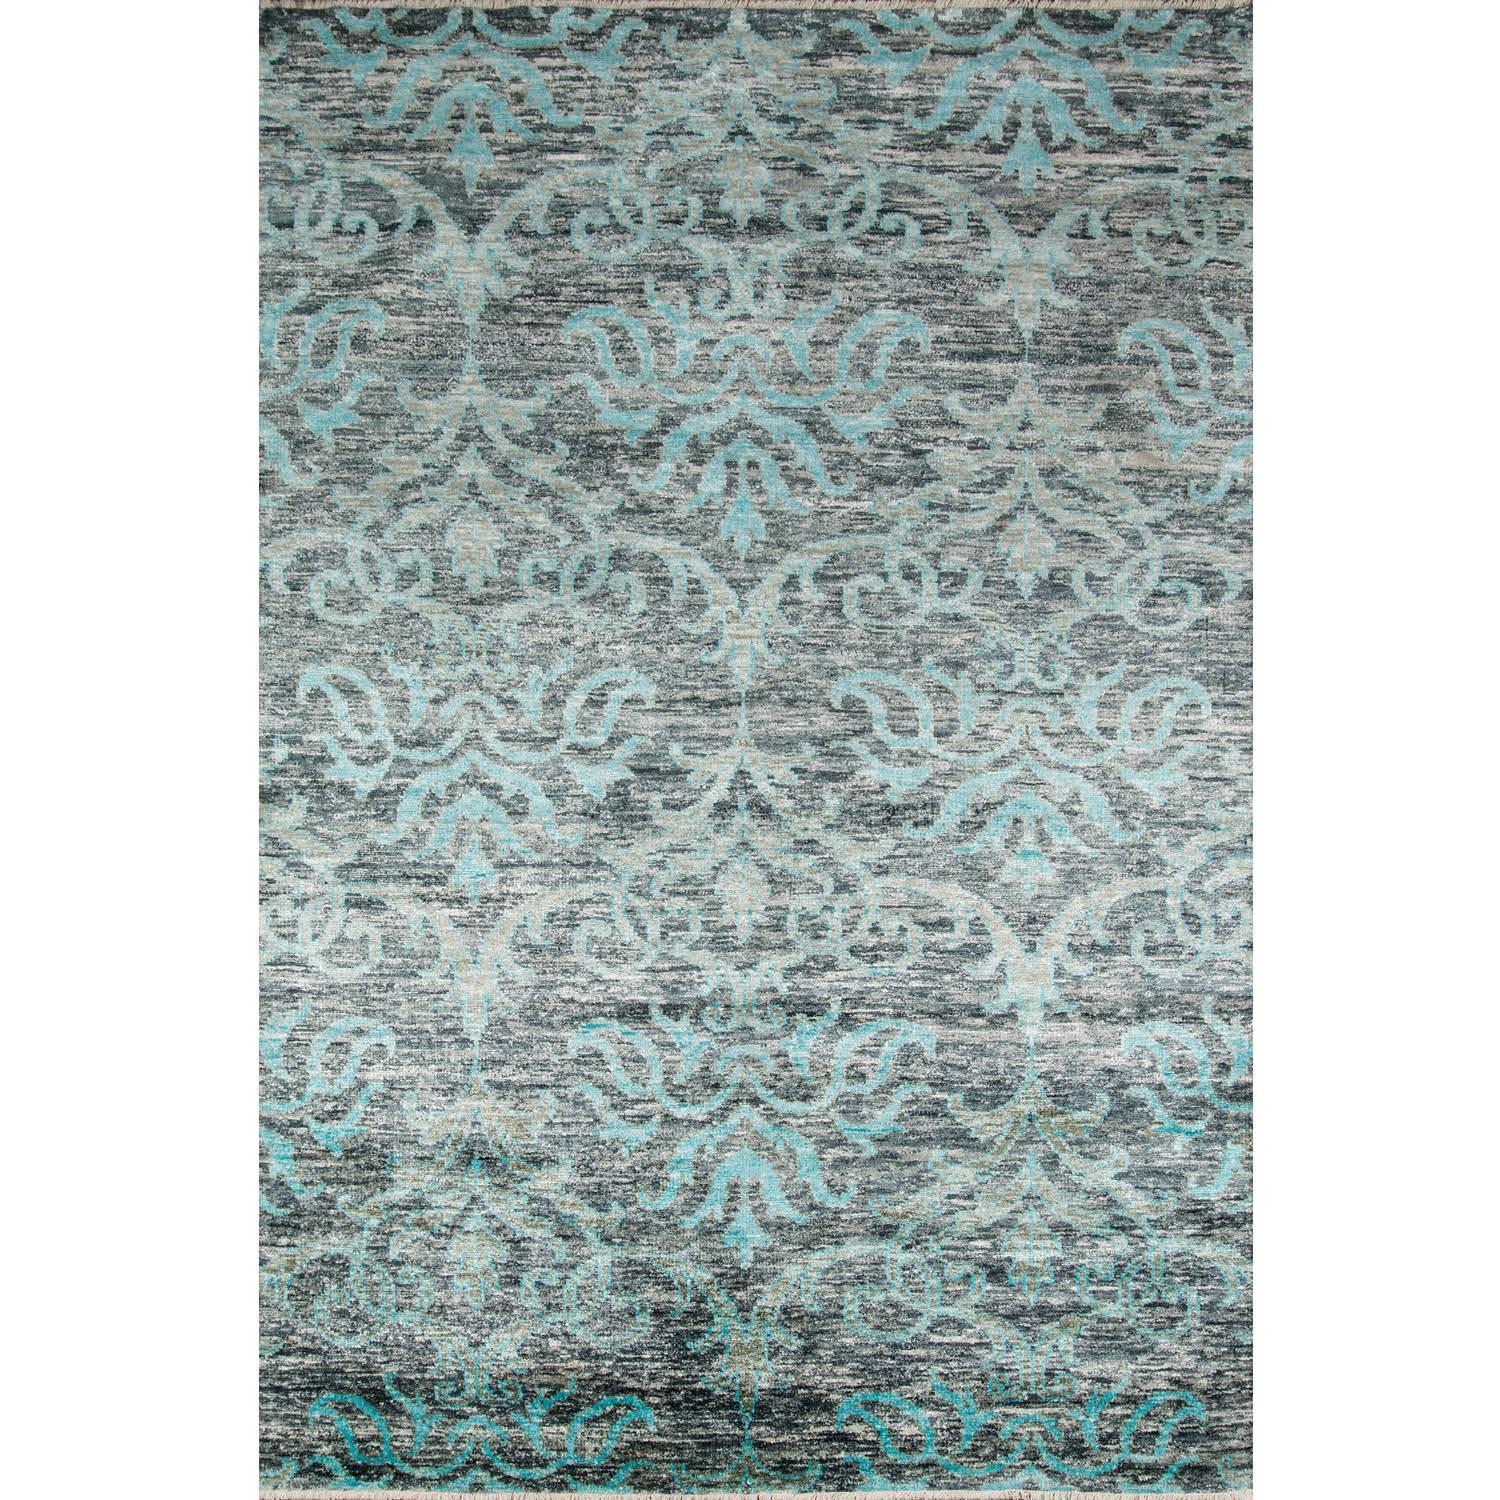 Momeni Artisan Rich Damask Area Rug by Momeni